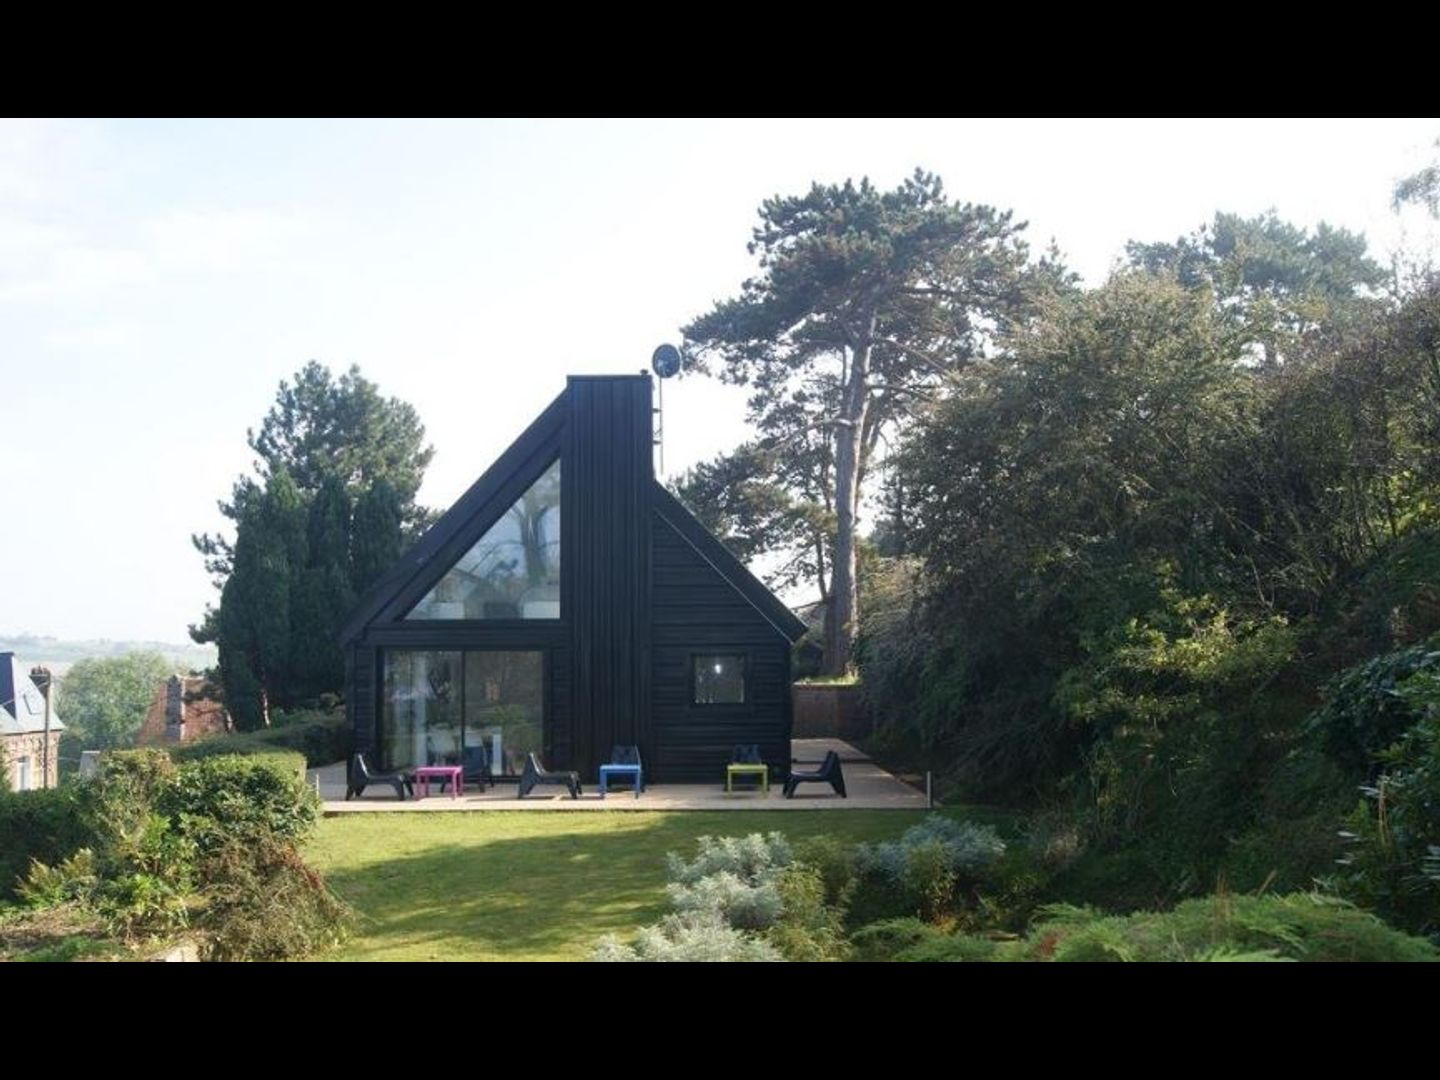 A house with trees in the background at Le Carré Quartz.